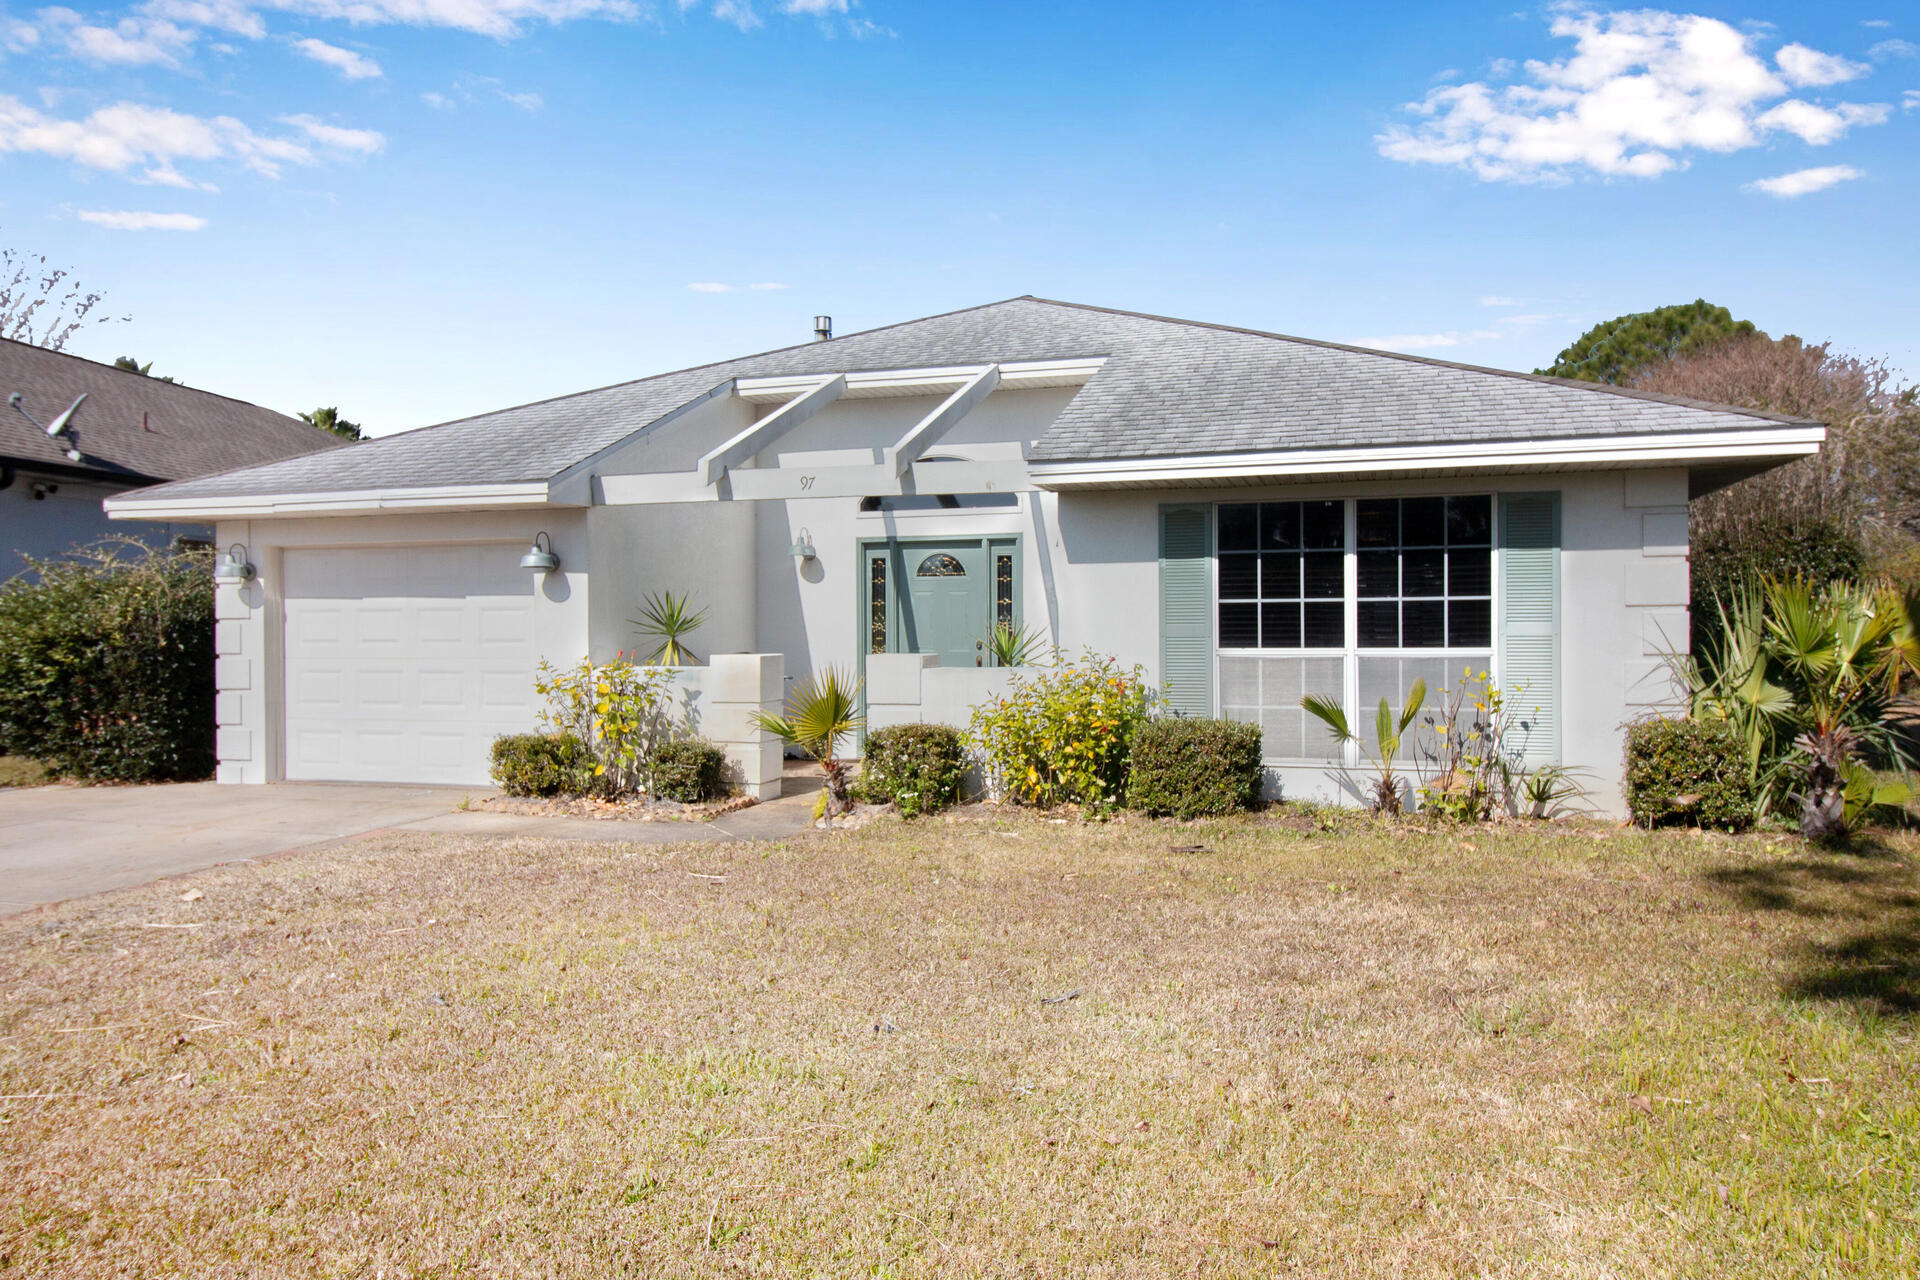 Photo of home for sale at 97 Bayside, Miramar Beach FL